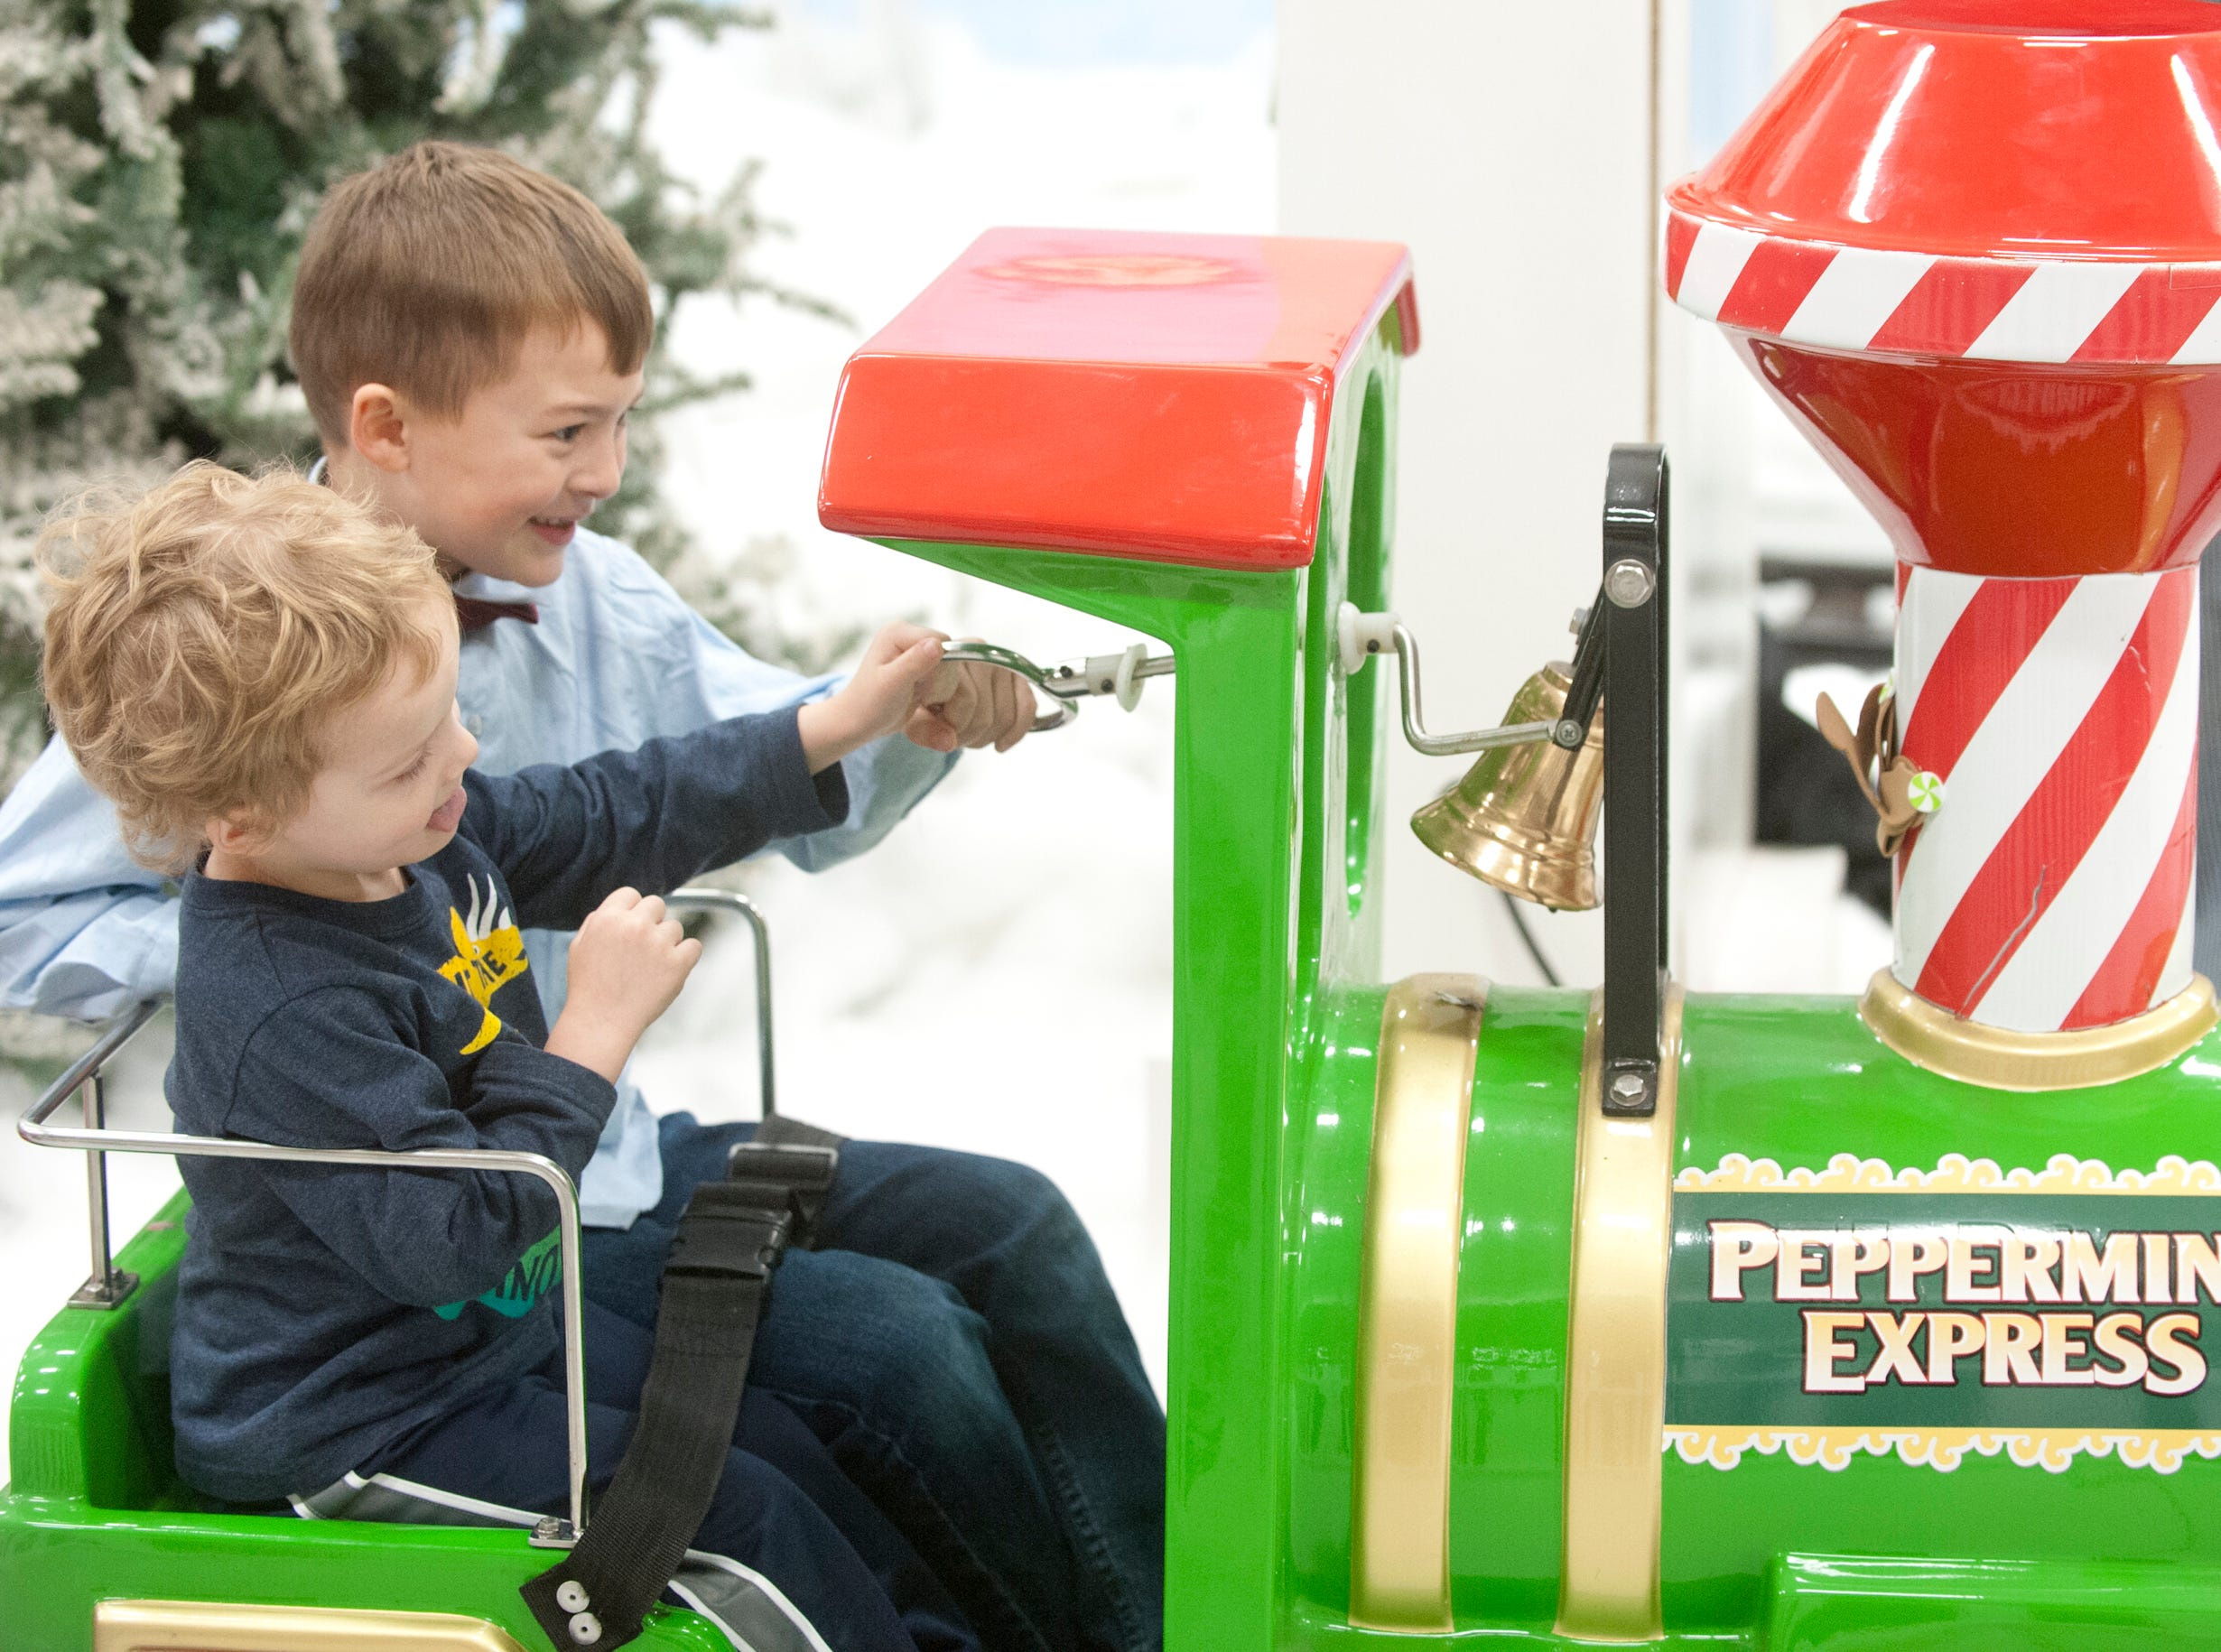 """Joshie Ferguson, age 4, left, and his cousin, Abram Williford, age 6, of Jeffersontown, right, ring the bell on the Peppermint Express train ride at the Galt House Hotel's  """"Breakfast with Santa.""""22 December 2018"""